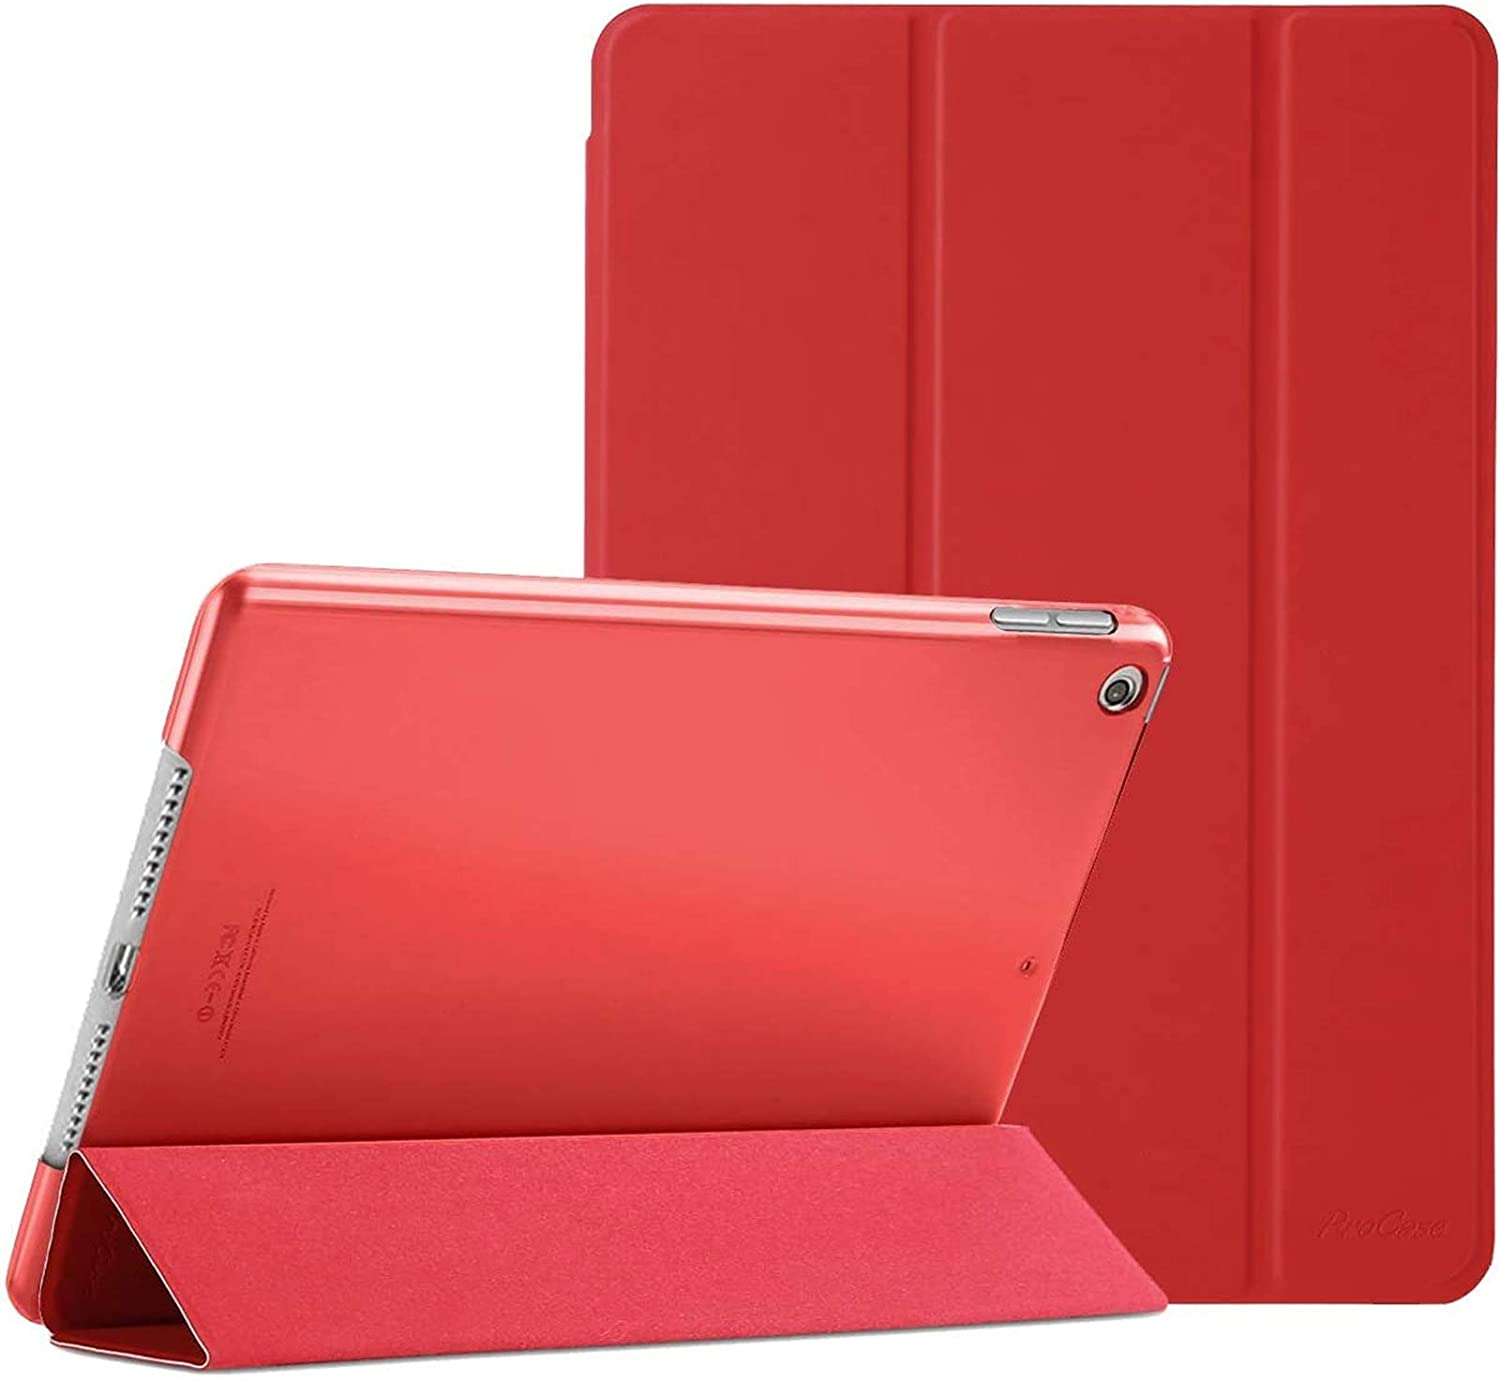 ProCase iPad 10.2 Case High order 2020 7th 2019 Generation Max 79% OFF 8th